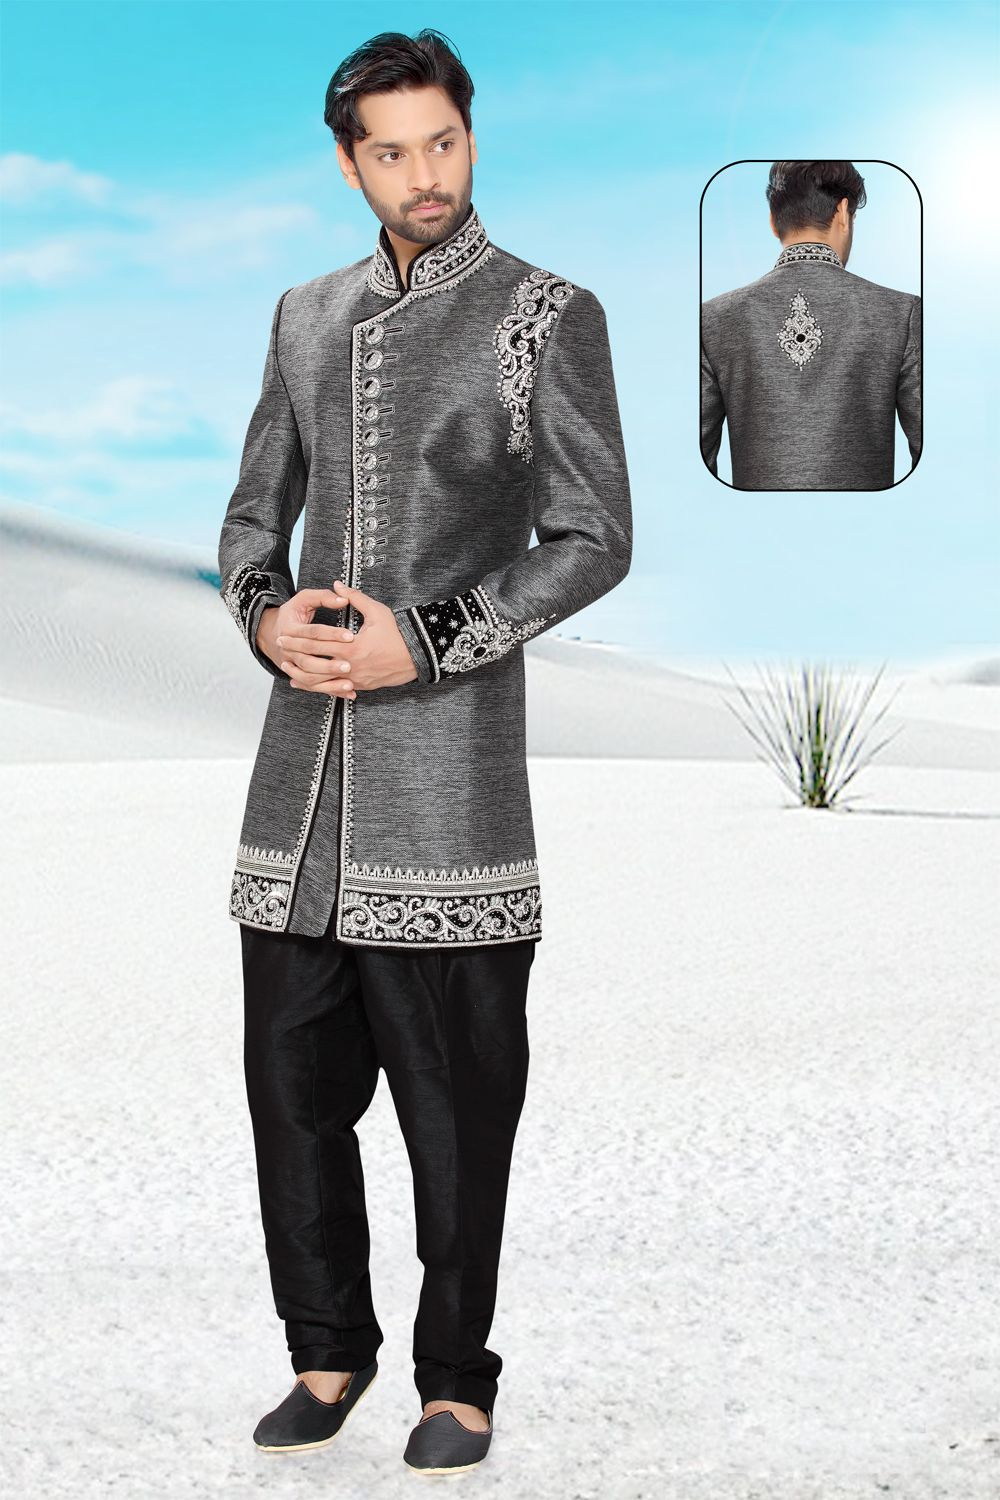 Pin by Variety Haat on Ethnic Wear for men, UK | Pinterest | Sherwani